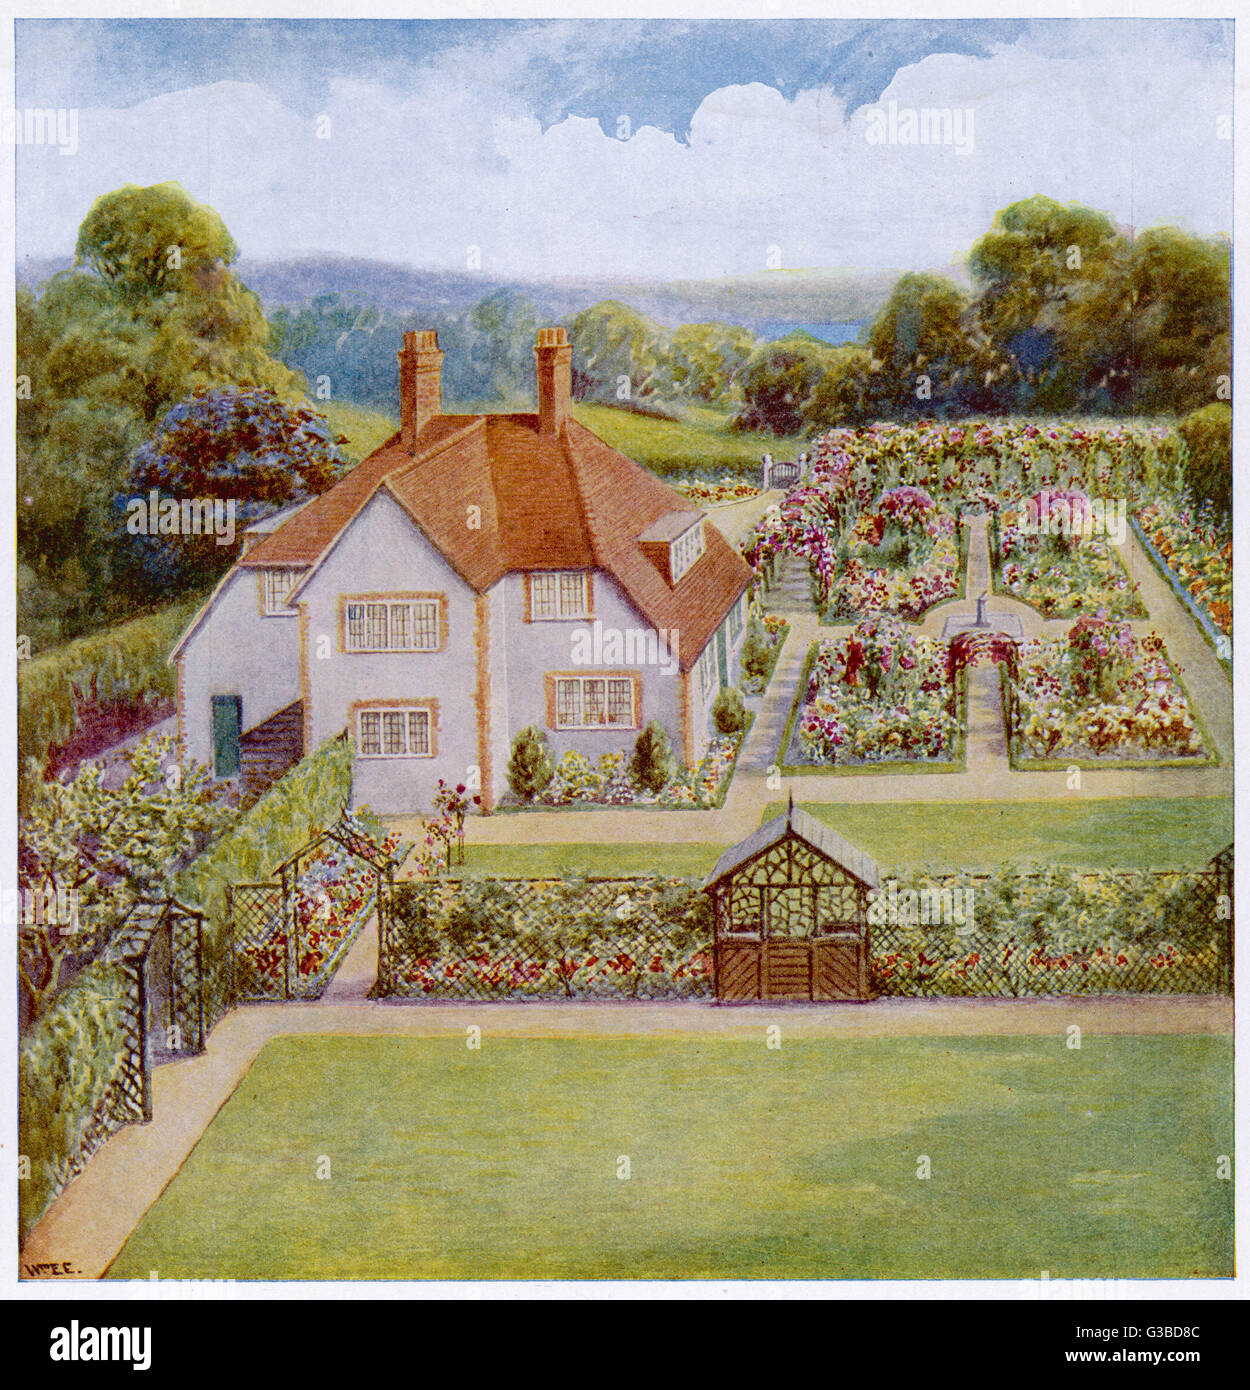 Layout for a garden and  detached country or suburban  house        Date: 1920s - Stock Image